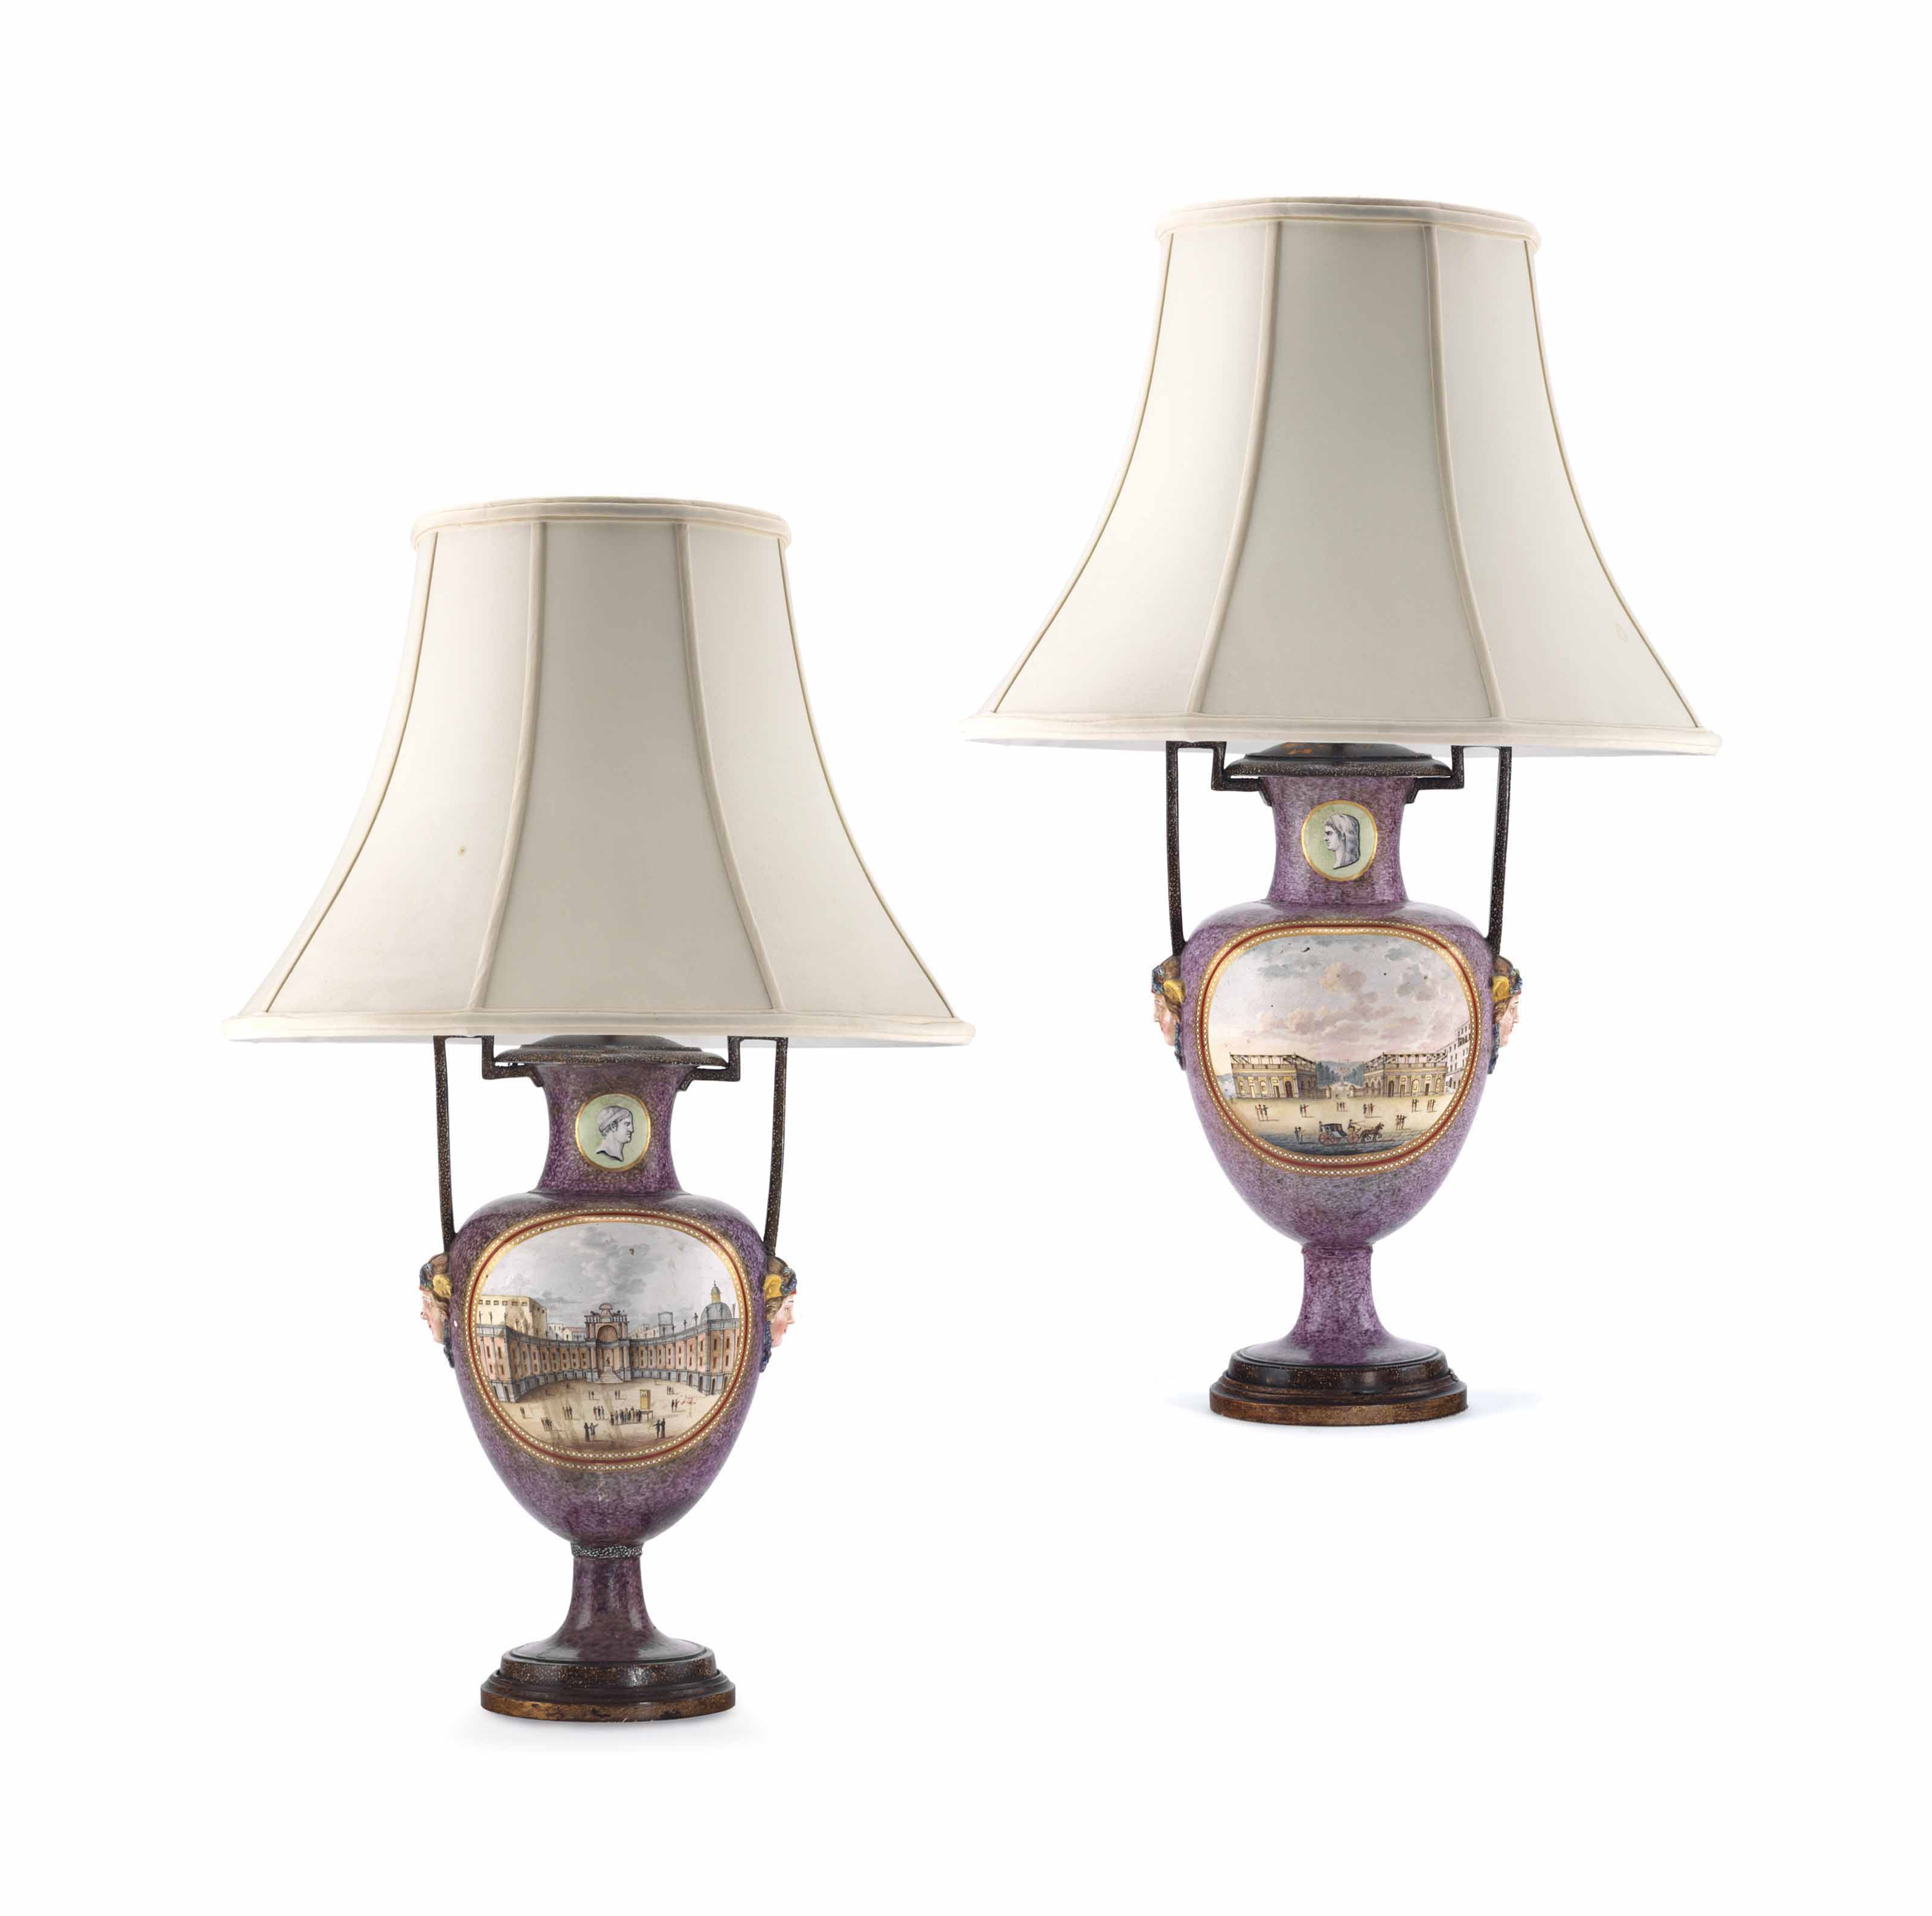 A PAIR OF NAPLES PORCELAIN TWO-HANDLED FAUX PORPHYRY-GROUND TOPOGRAPHICAL VASES MOUNTED AS LAMPS